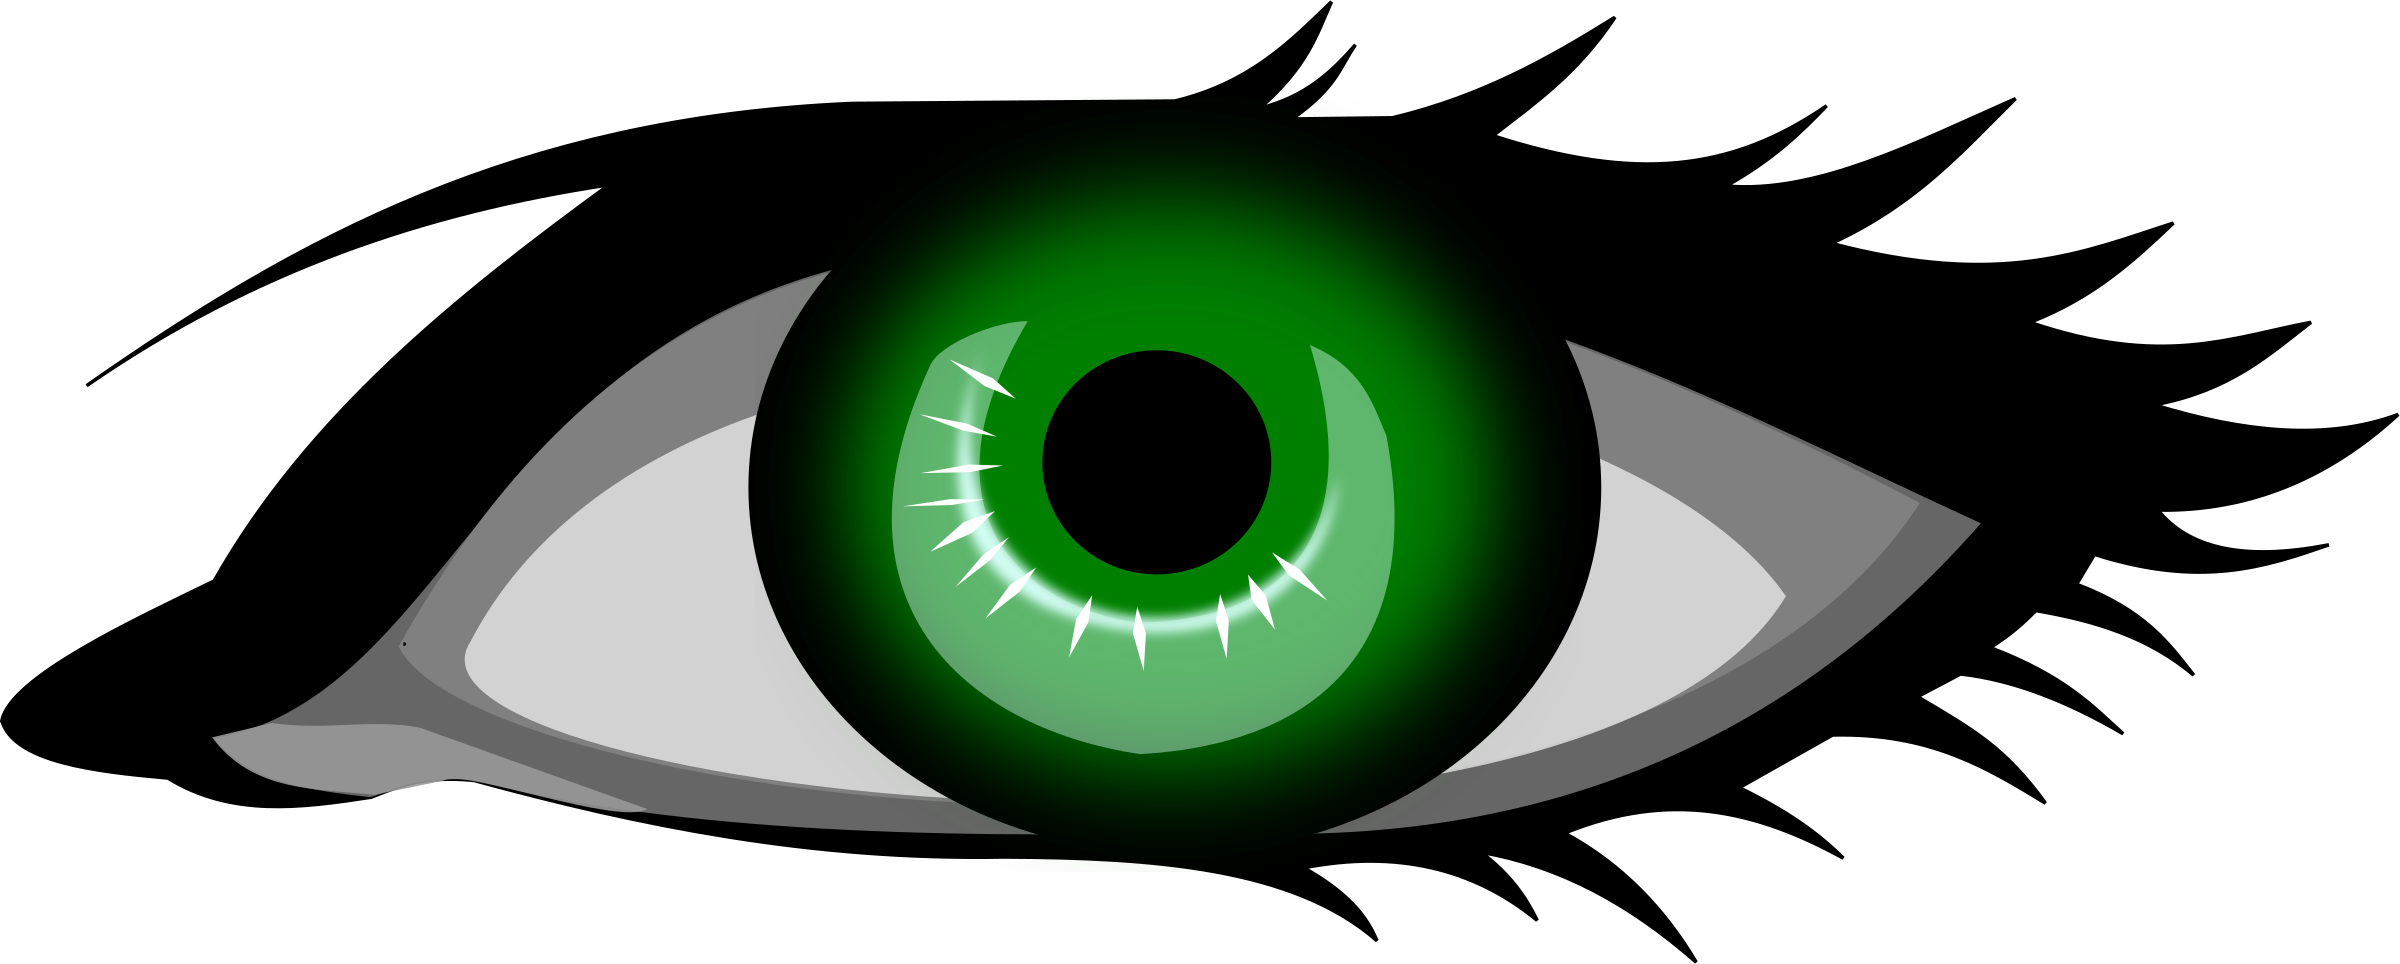 Green eye by secretlondon